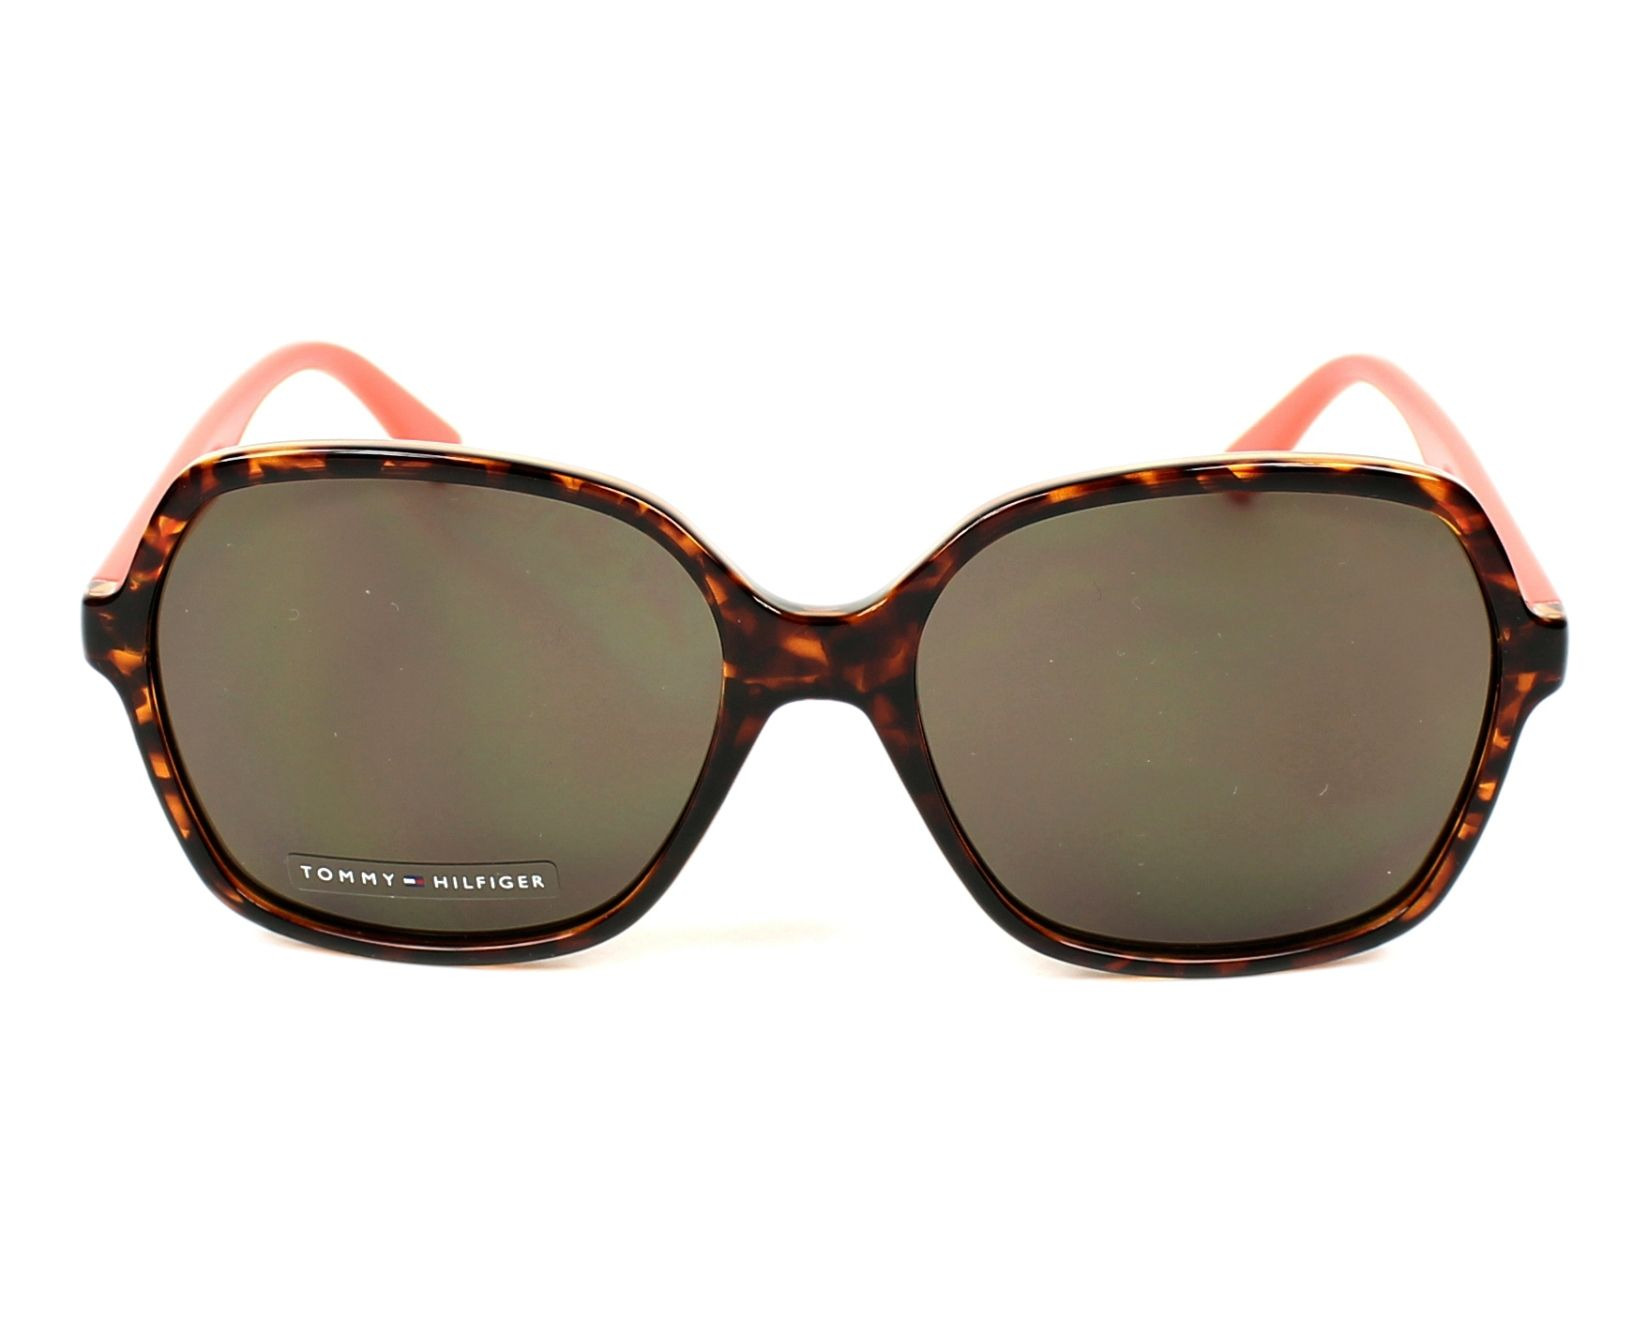 Tommy Hilfiger Sunglasses TH-1490-S 086/IR Havana